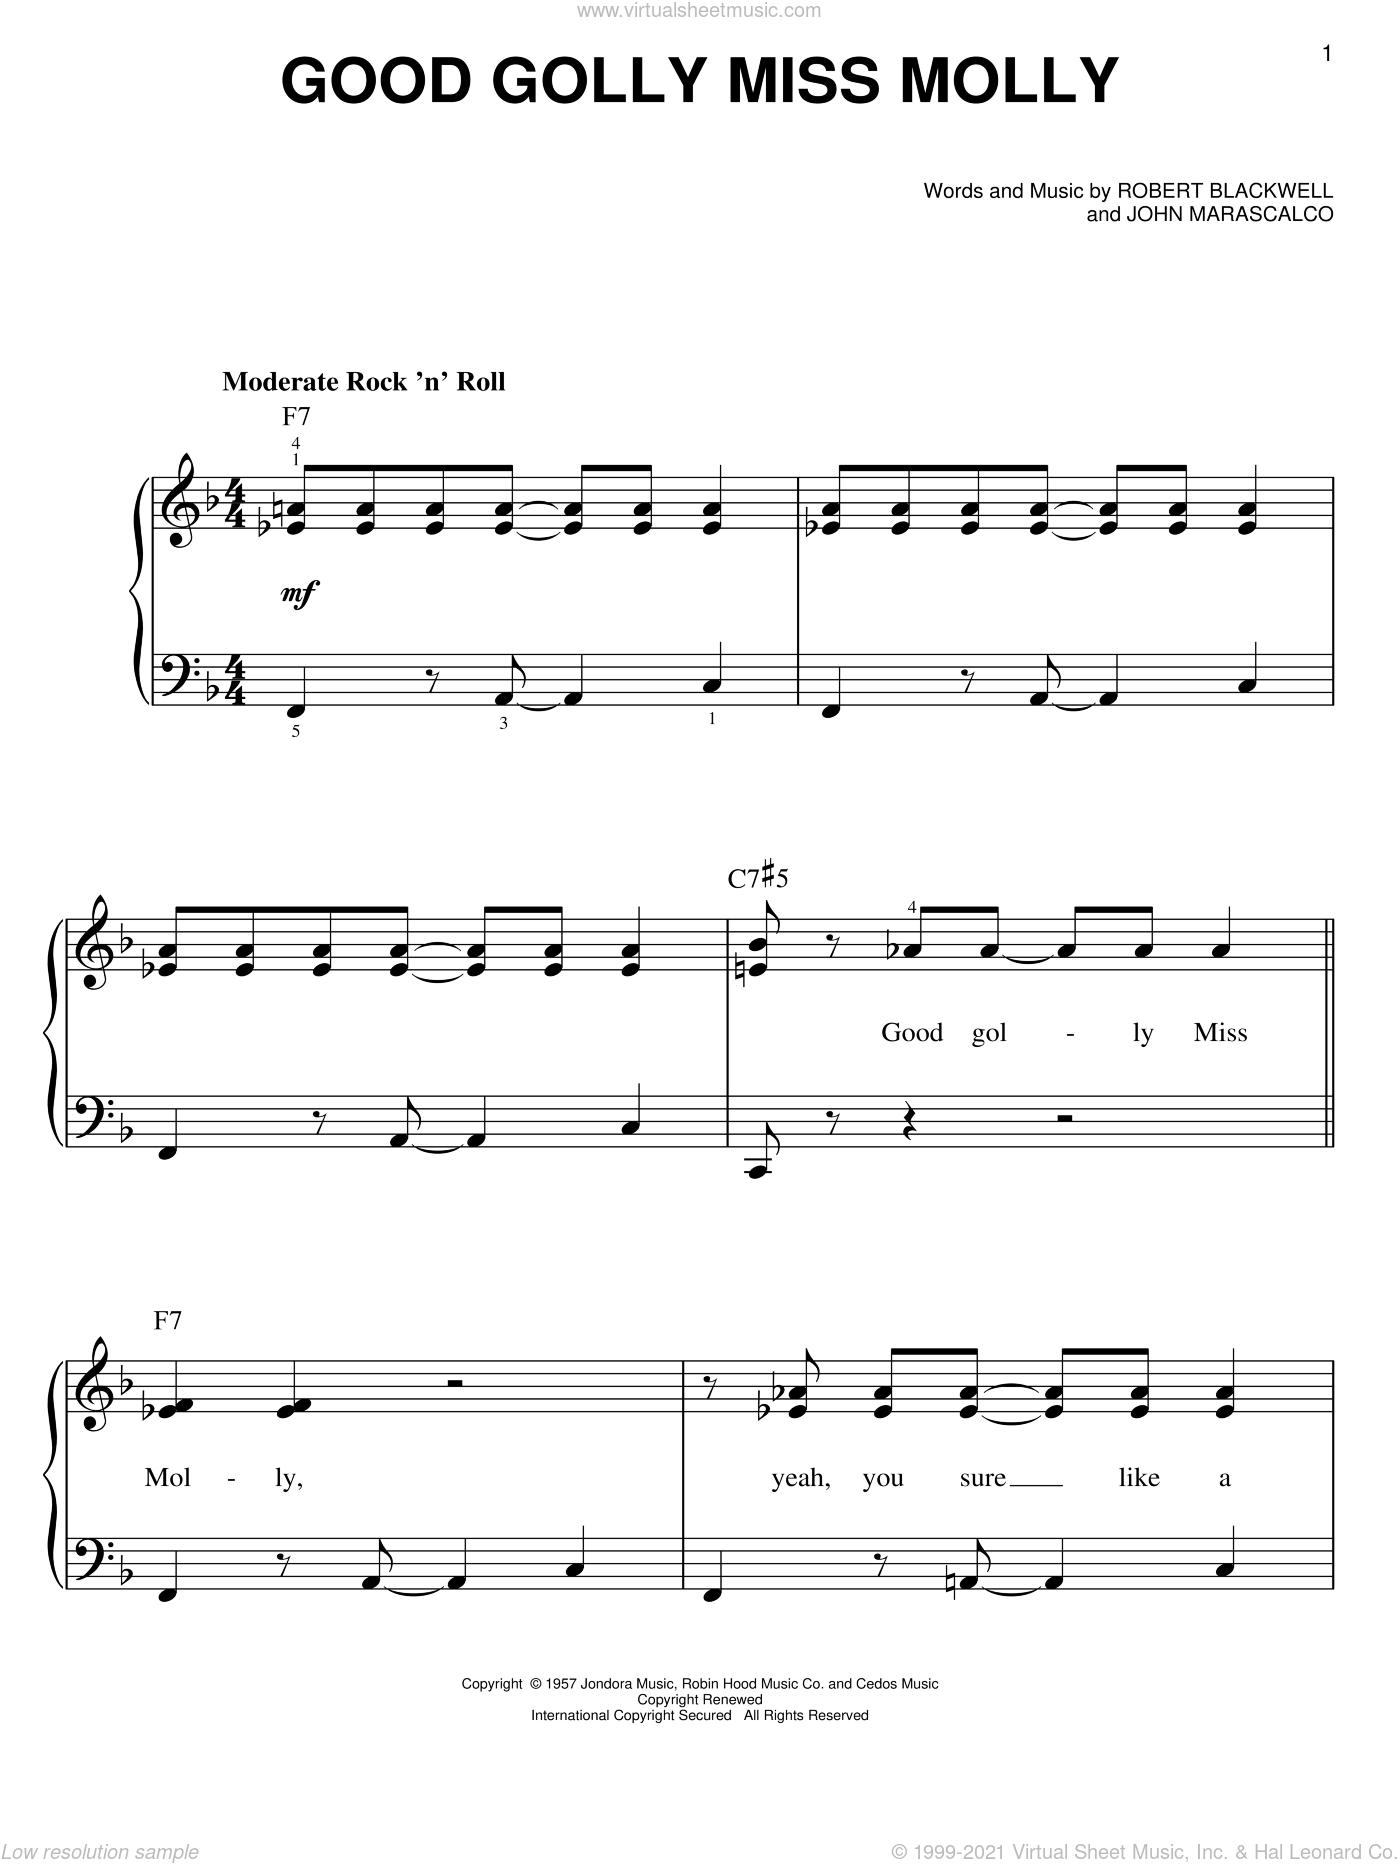 Good Golly Miss Molly sheet music for piano solo by Little Richard, John Marascalco and Robert Blackwell, easy skill level